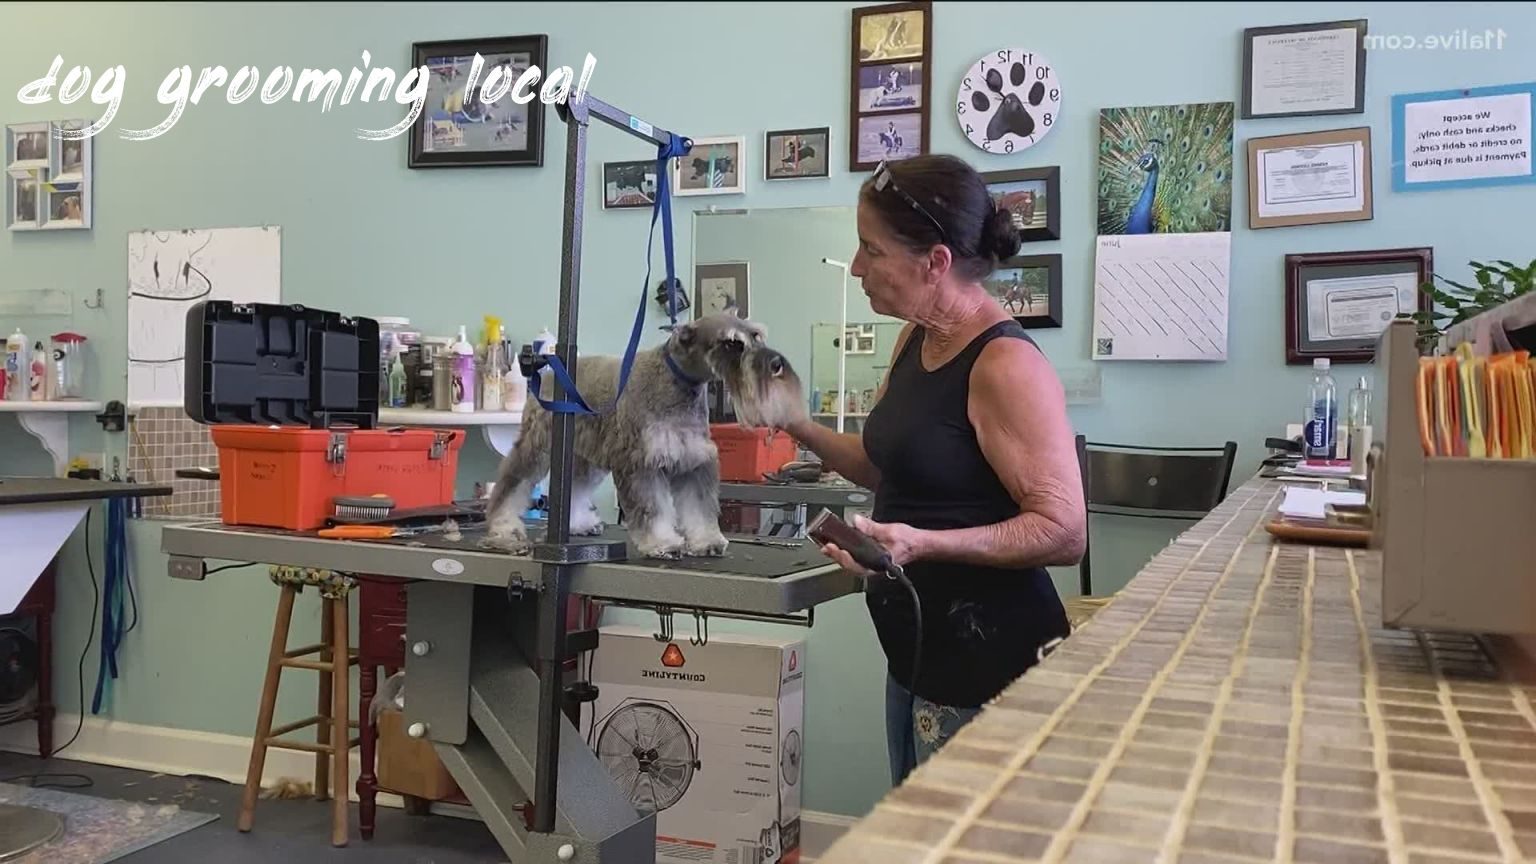 dog grooming local Review